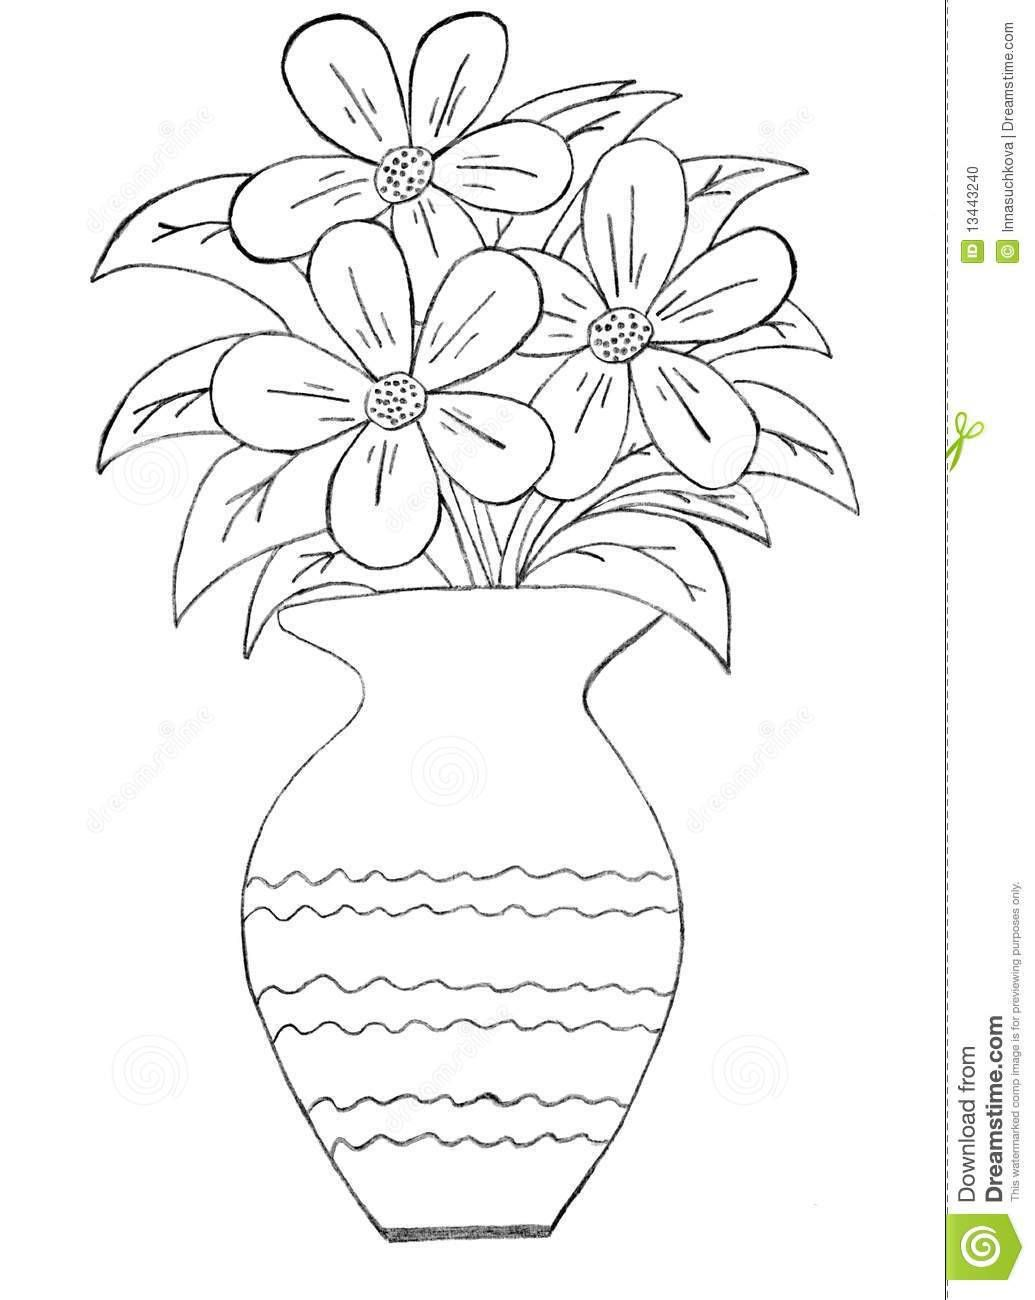 How To Make Flower Pot Drawing Flower vase drawing